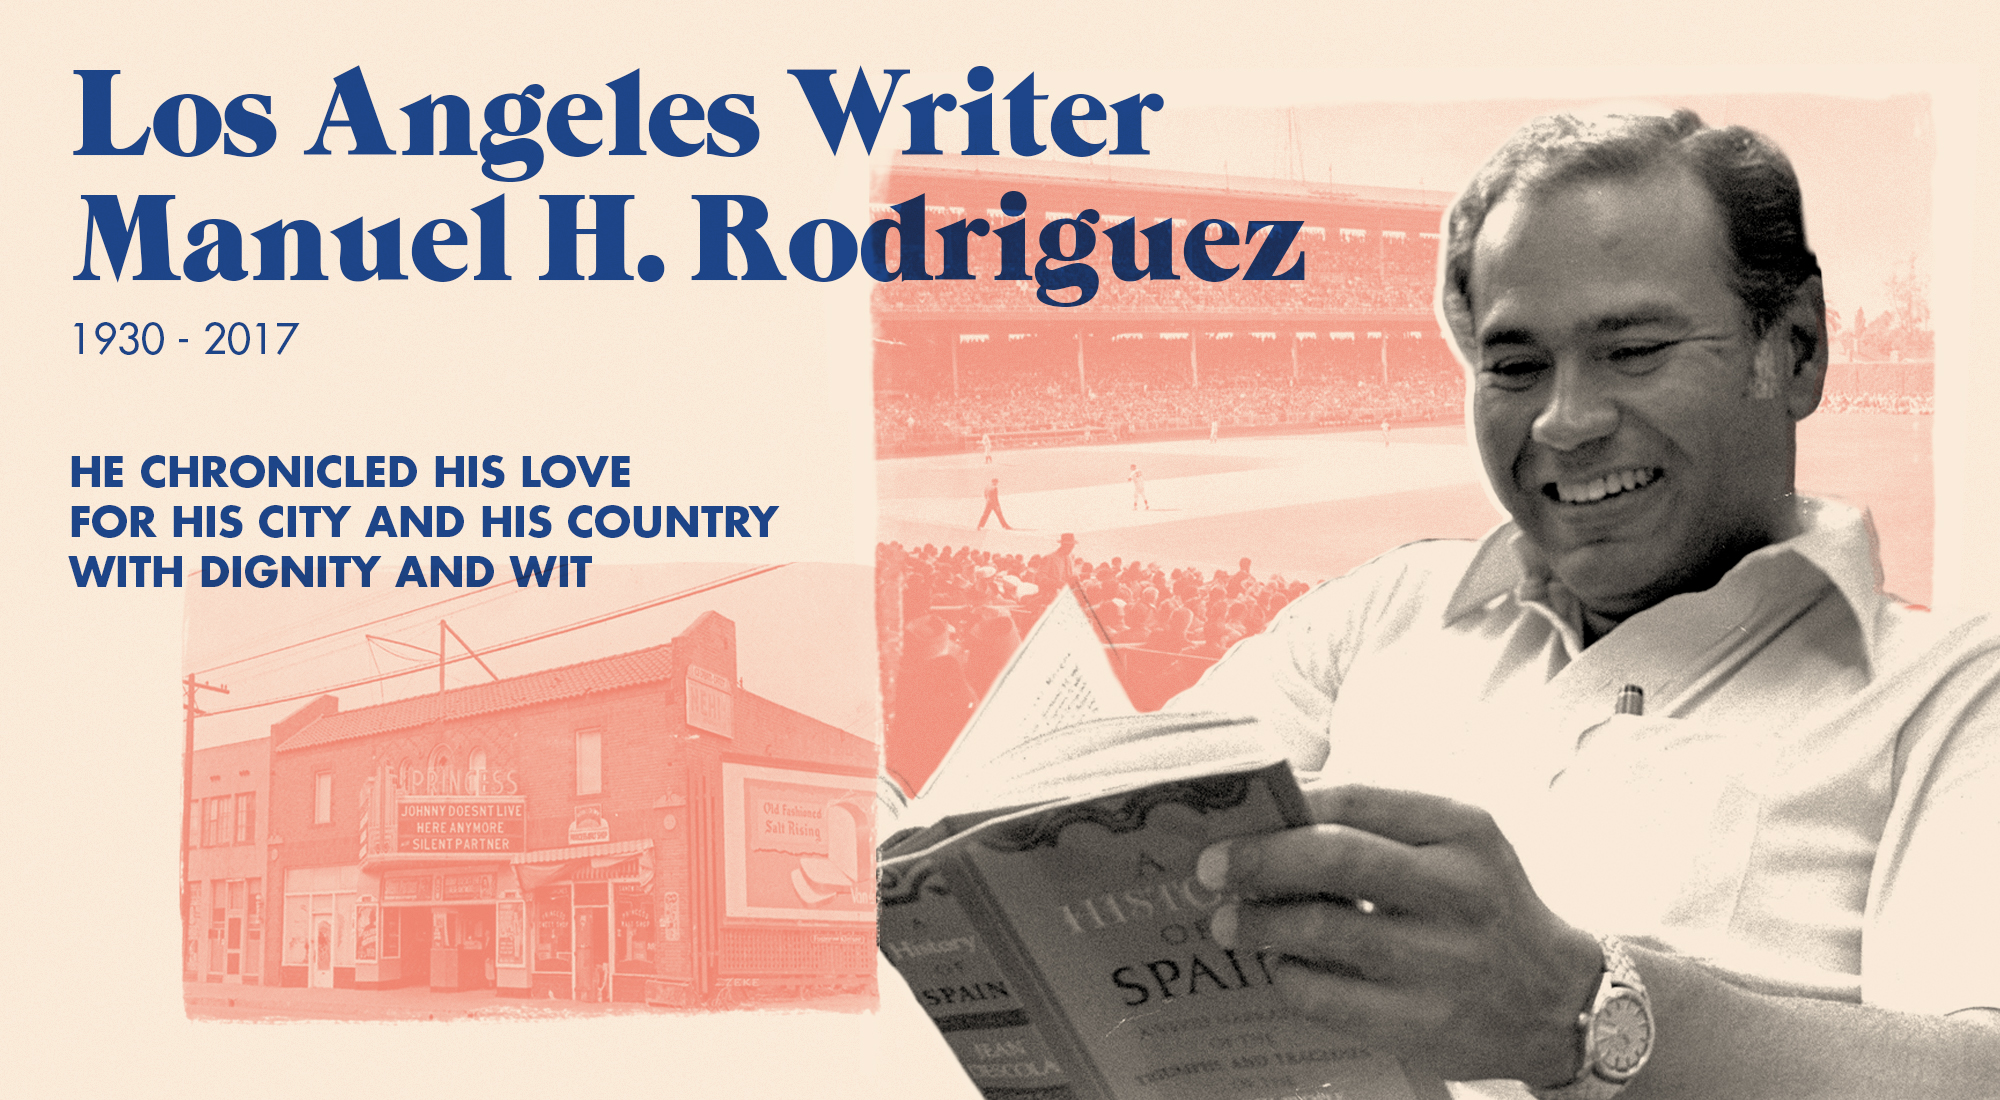 Los Angeles Writer Manuel H. Rodriguez (1930-2017)